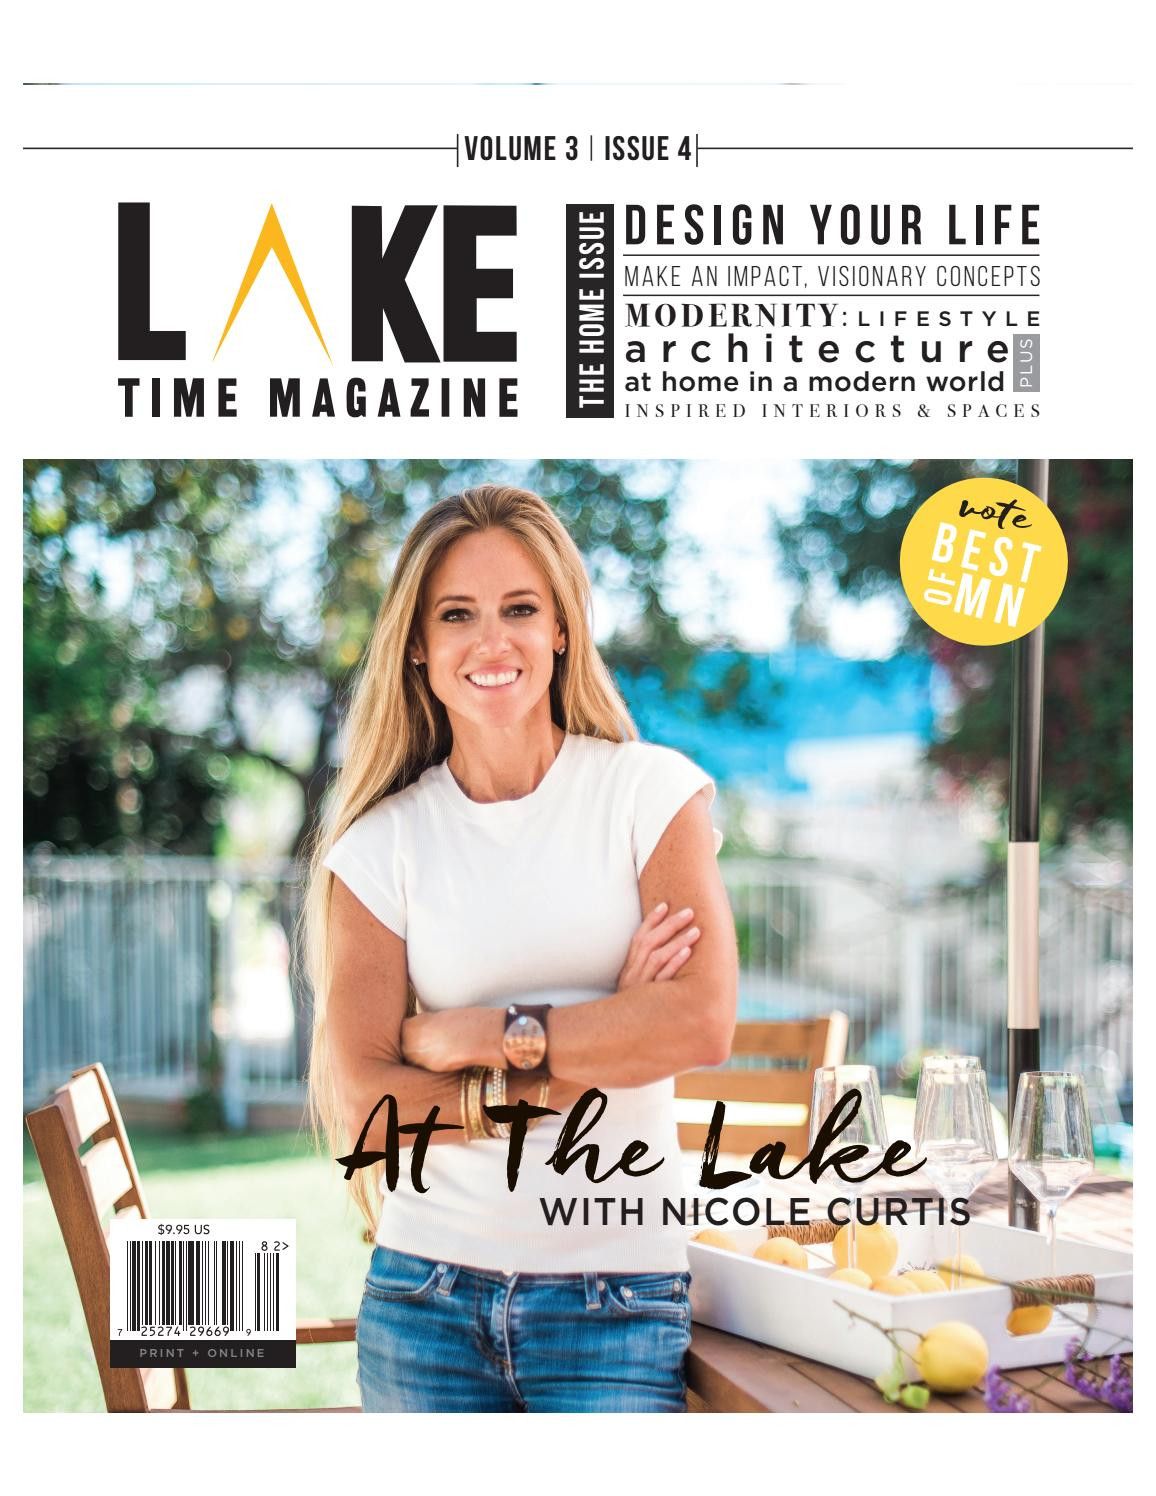 Vase Turned Dining Table Magnolia Of Lake Time Magazine Vol 3 issue 4 Full by Lake Co issuu with Page 1